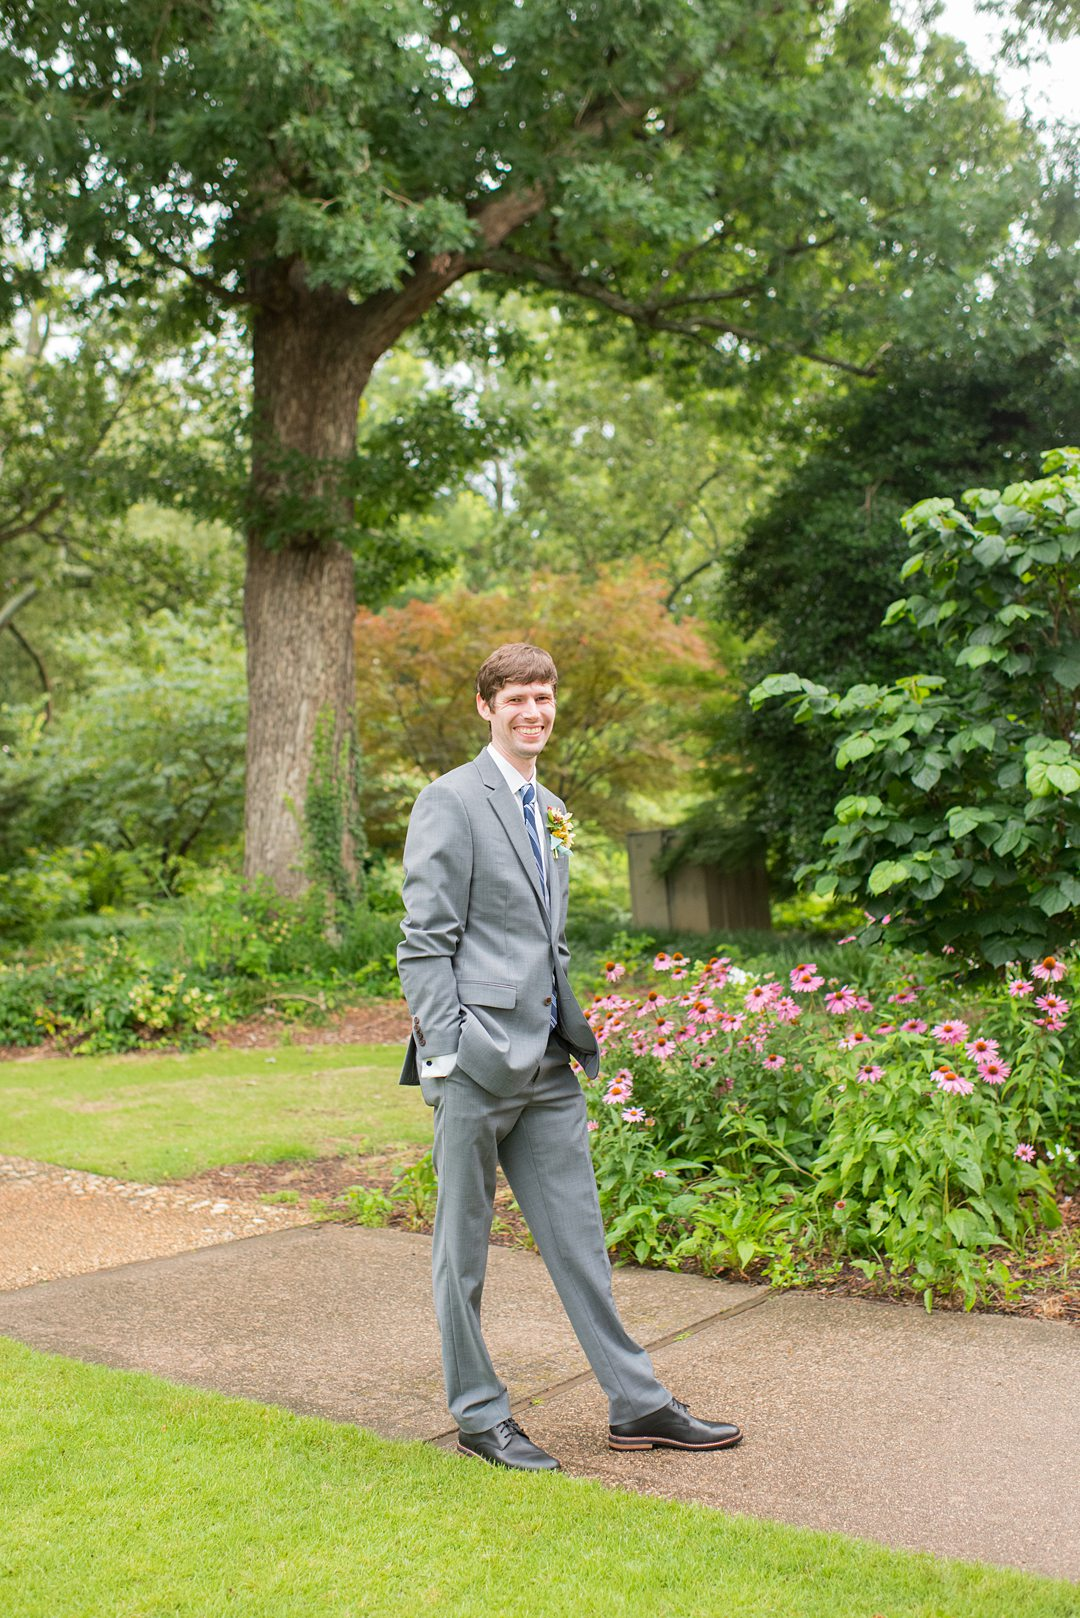 The groom after his small outdoor ceremony in a park in Raleigh, North Carolina. Photographed by Mikkel Paige Photography. #mikkelpaige #groomstyle #raleighnc